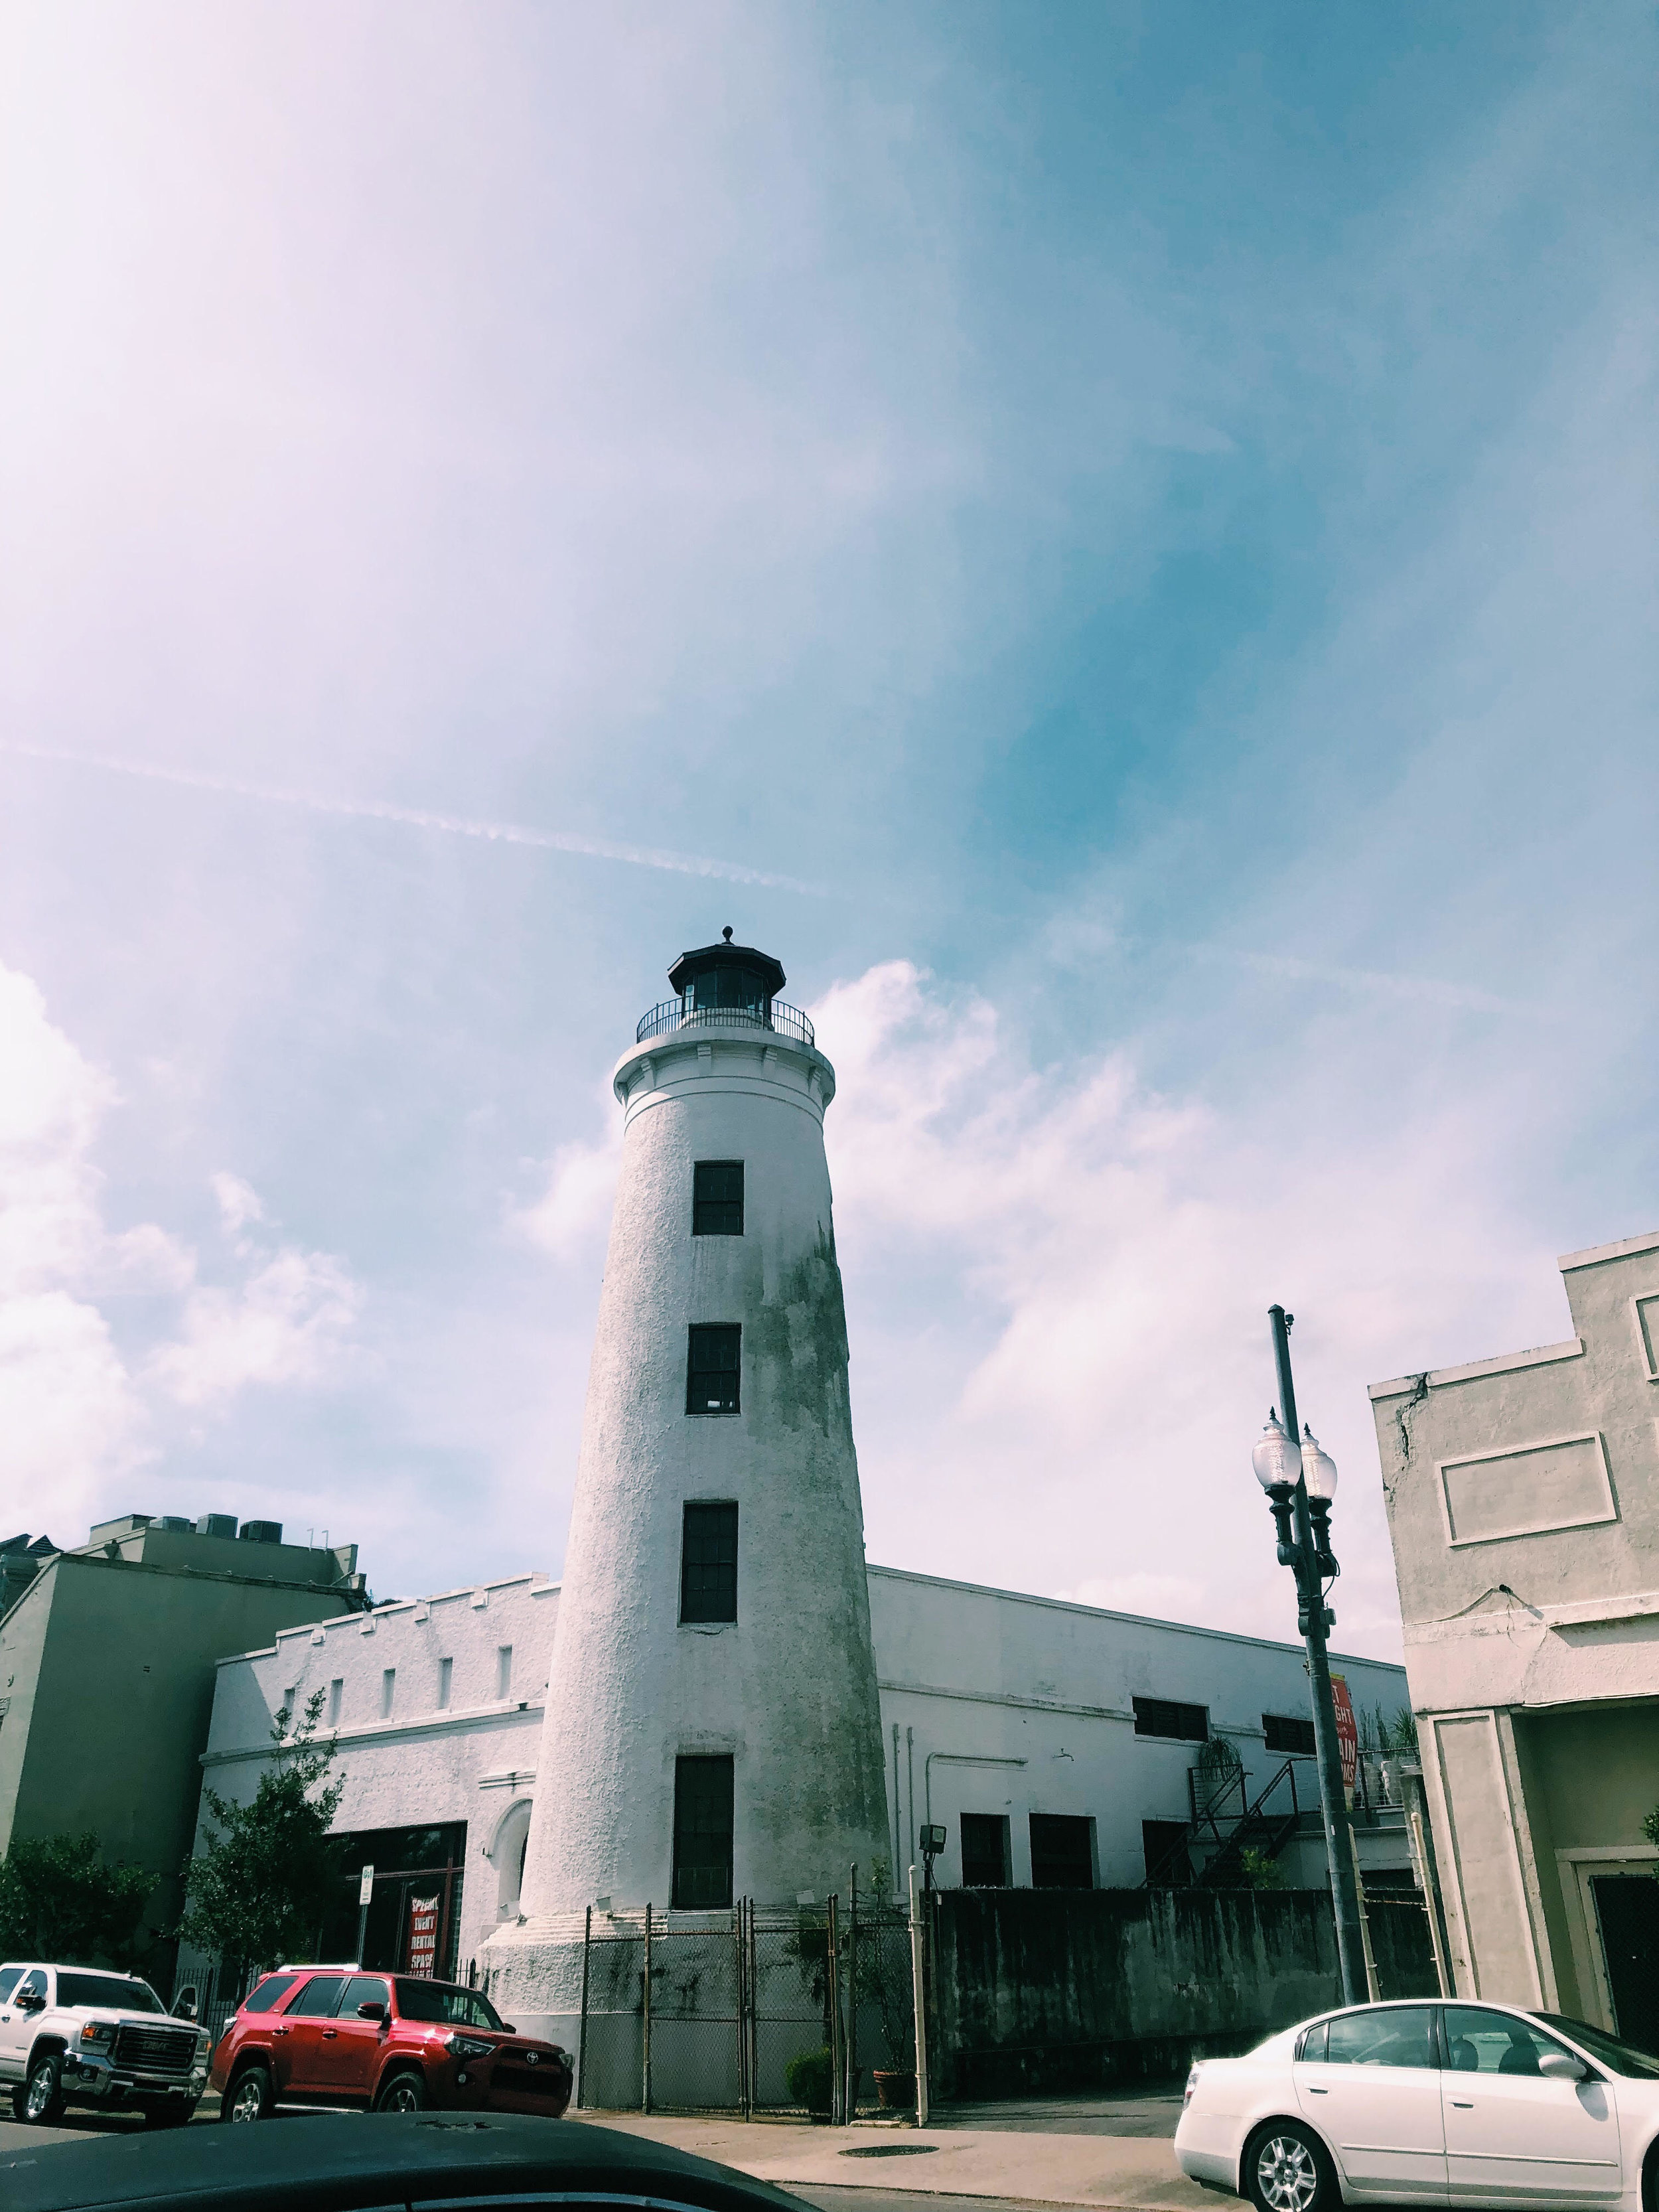 - Lighthouse look-alike in the middle of the Warehouse district of New Orleans